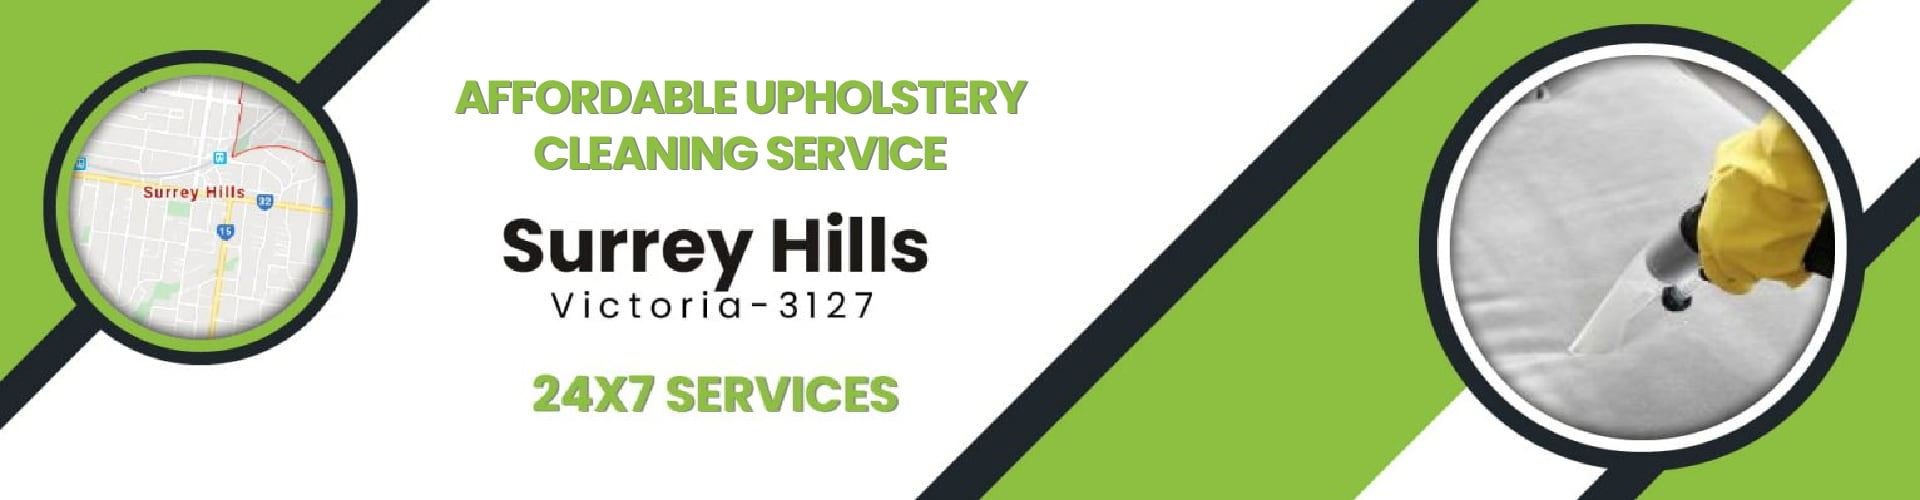 Upholstery Cleaning Surrey Hills